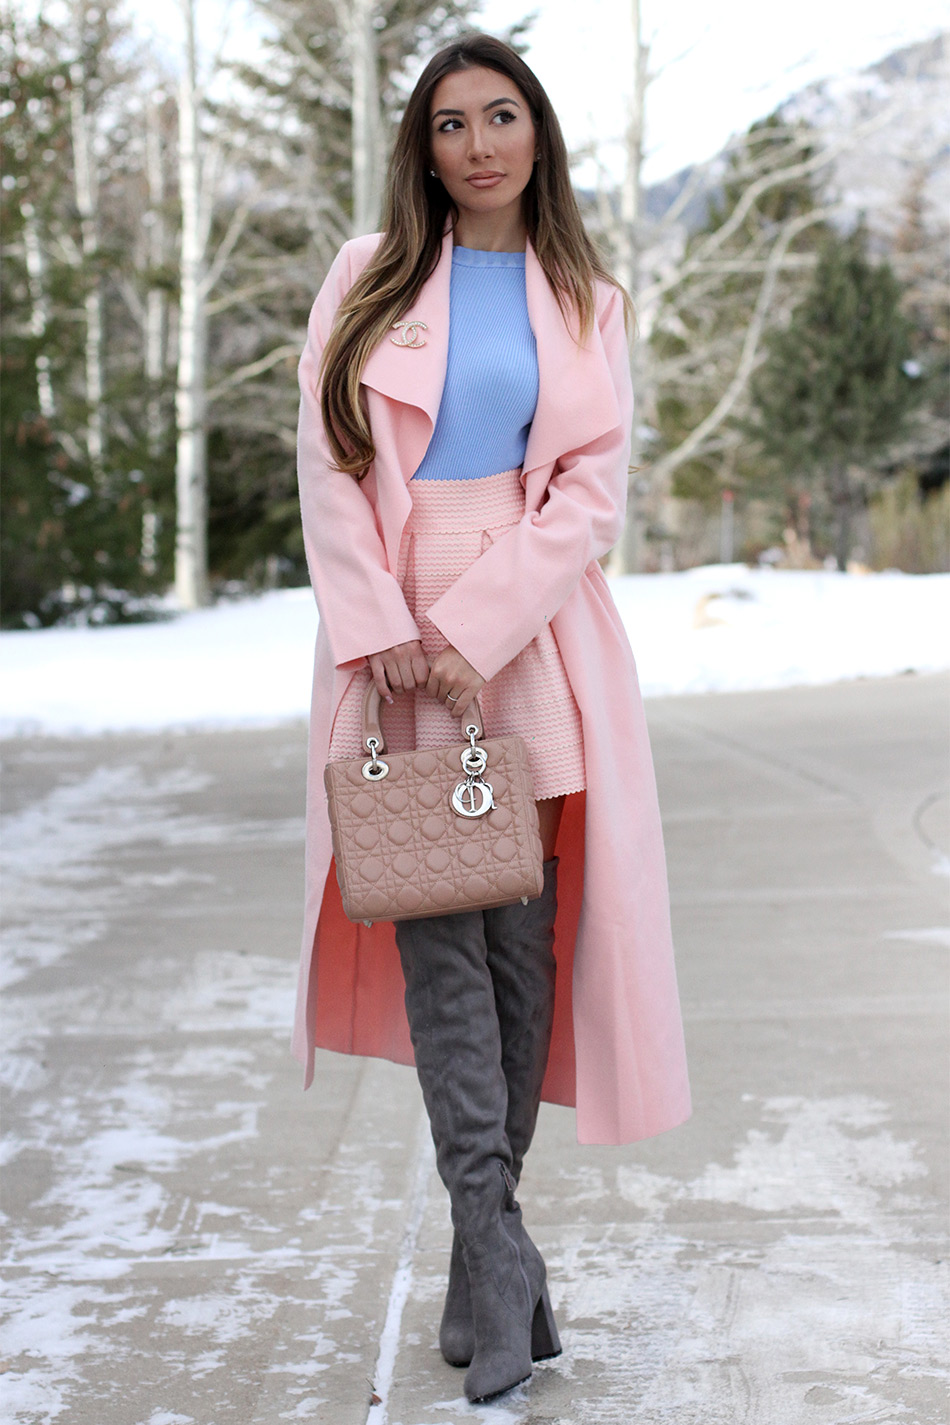 Winter look by Ulia Ali. Wearing long pink coat and grey Stuat Weitzman warm over the knee boots.